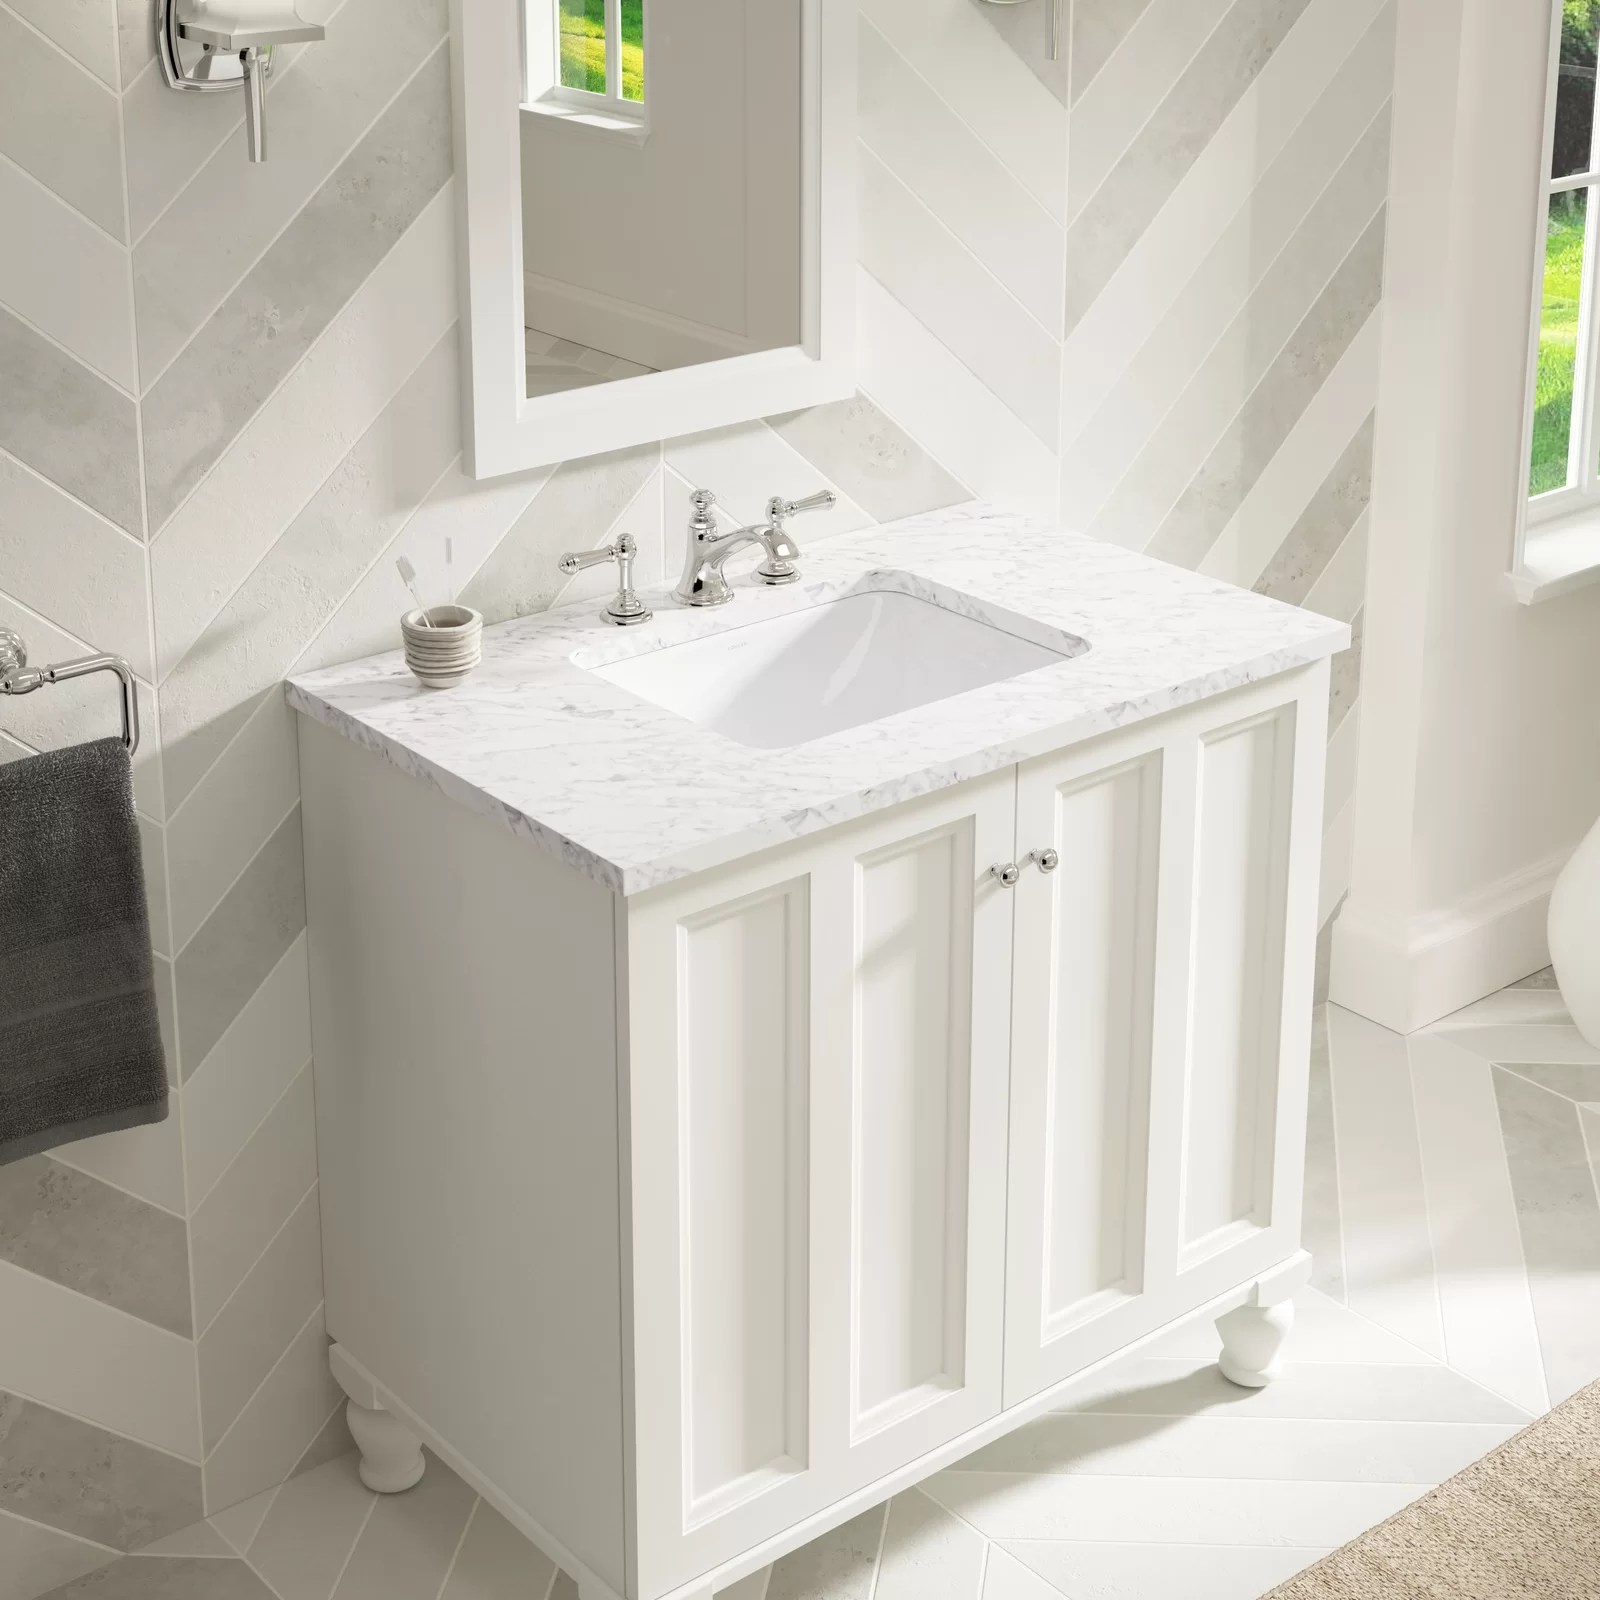 Bathroom Kohler Caxton Ceramic Rectangular Undermount Bathroom Sink With Overflow